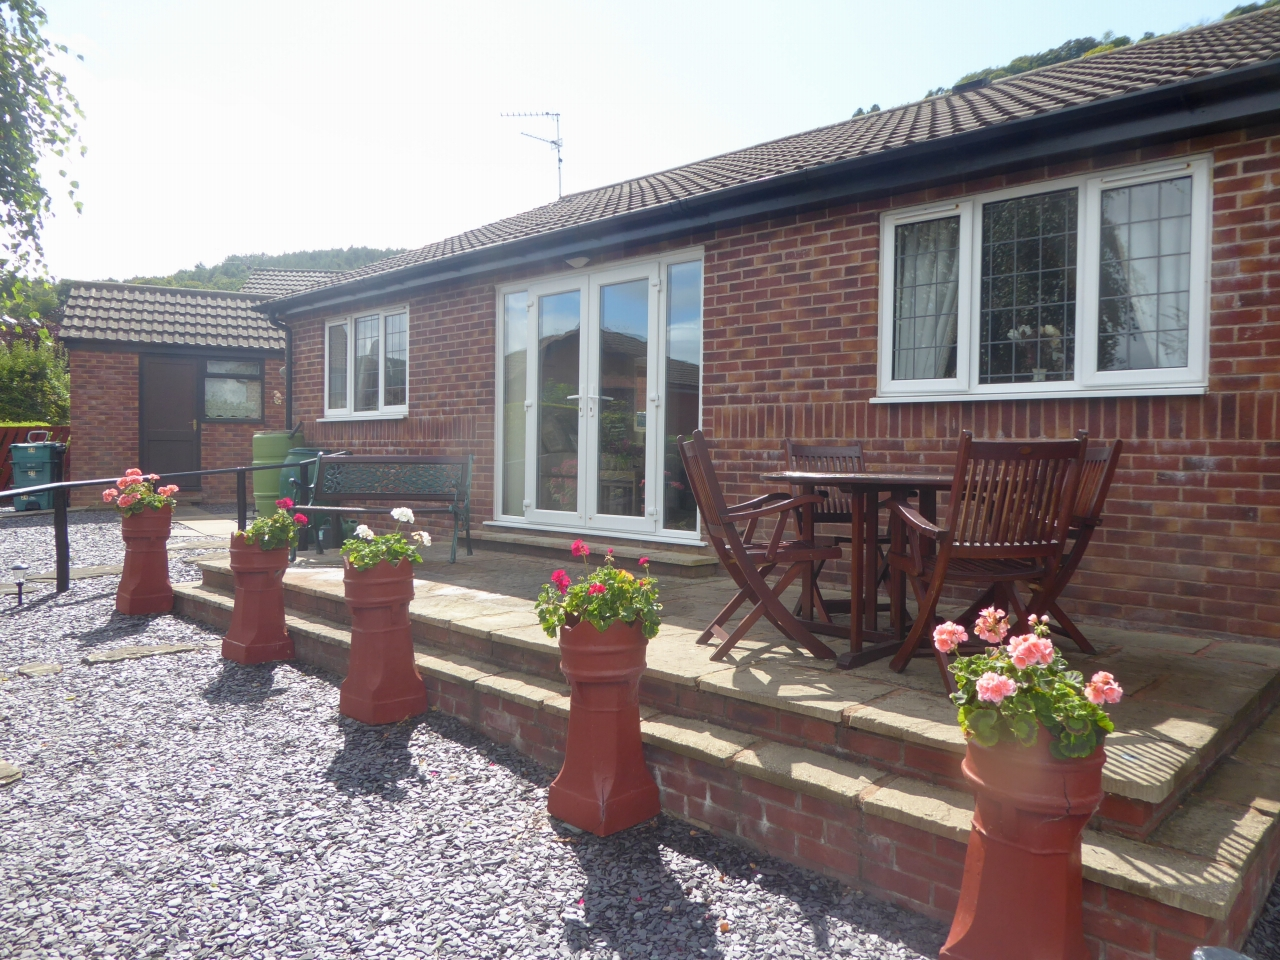 3 bedroom detached bungalow SSTC in Abergele - Photograph 13